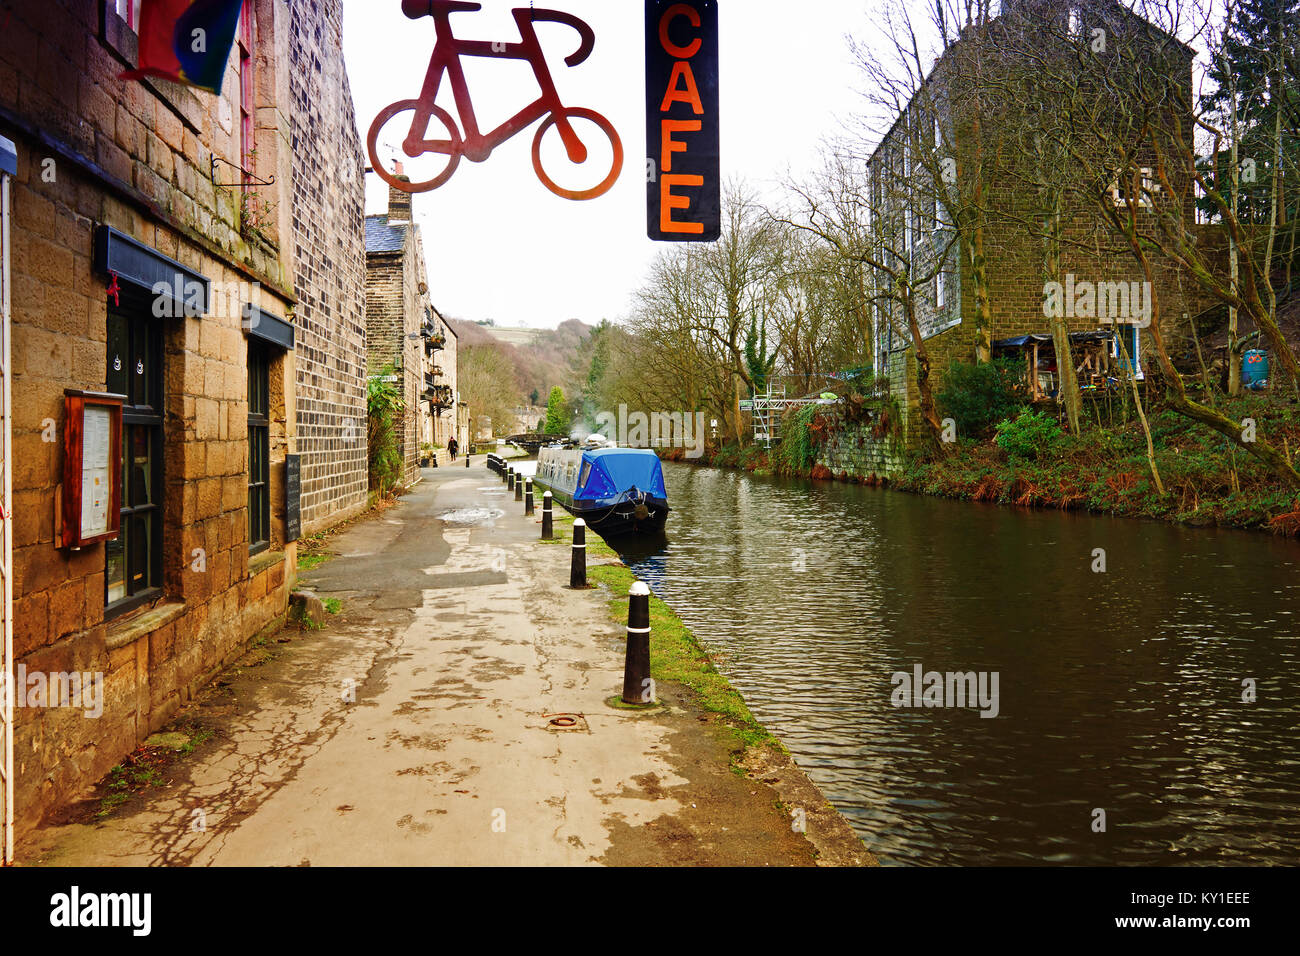 A barge and canal side cafe on the Rochdale Canal at Sowerby Bridge West Yorkshire UK - Stock Image